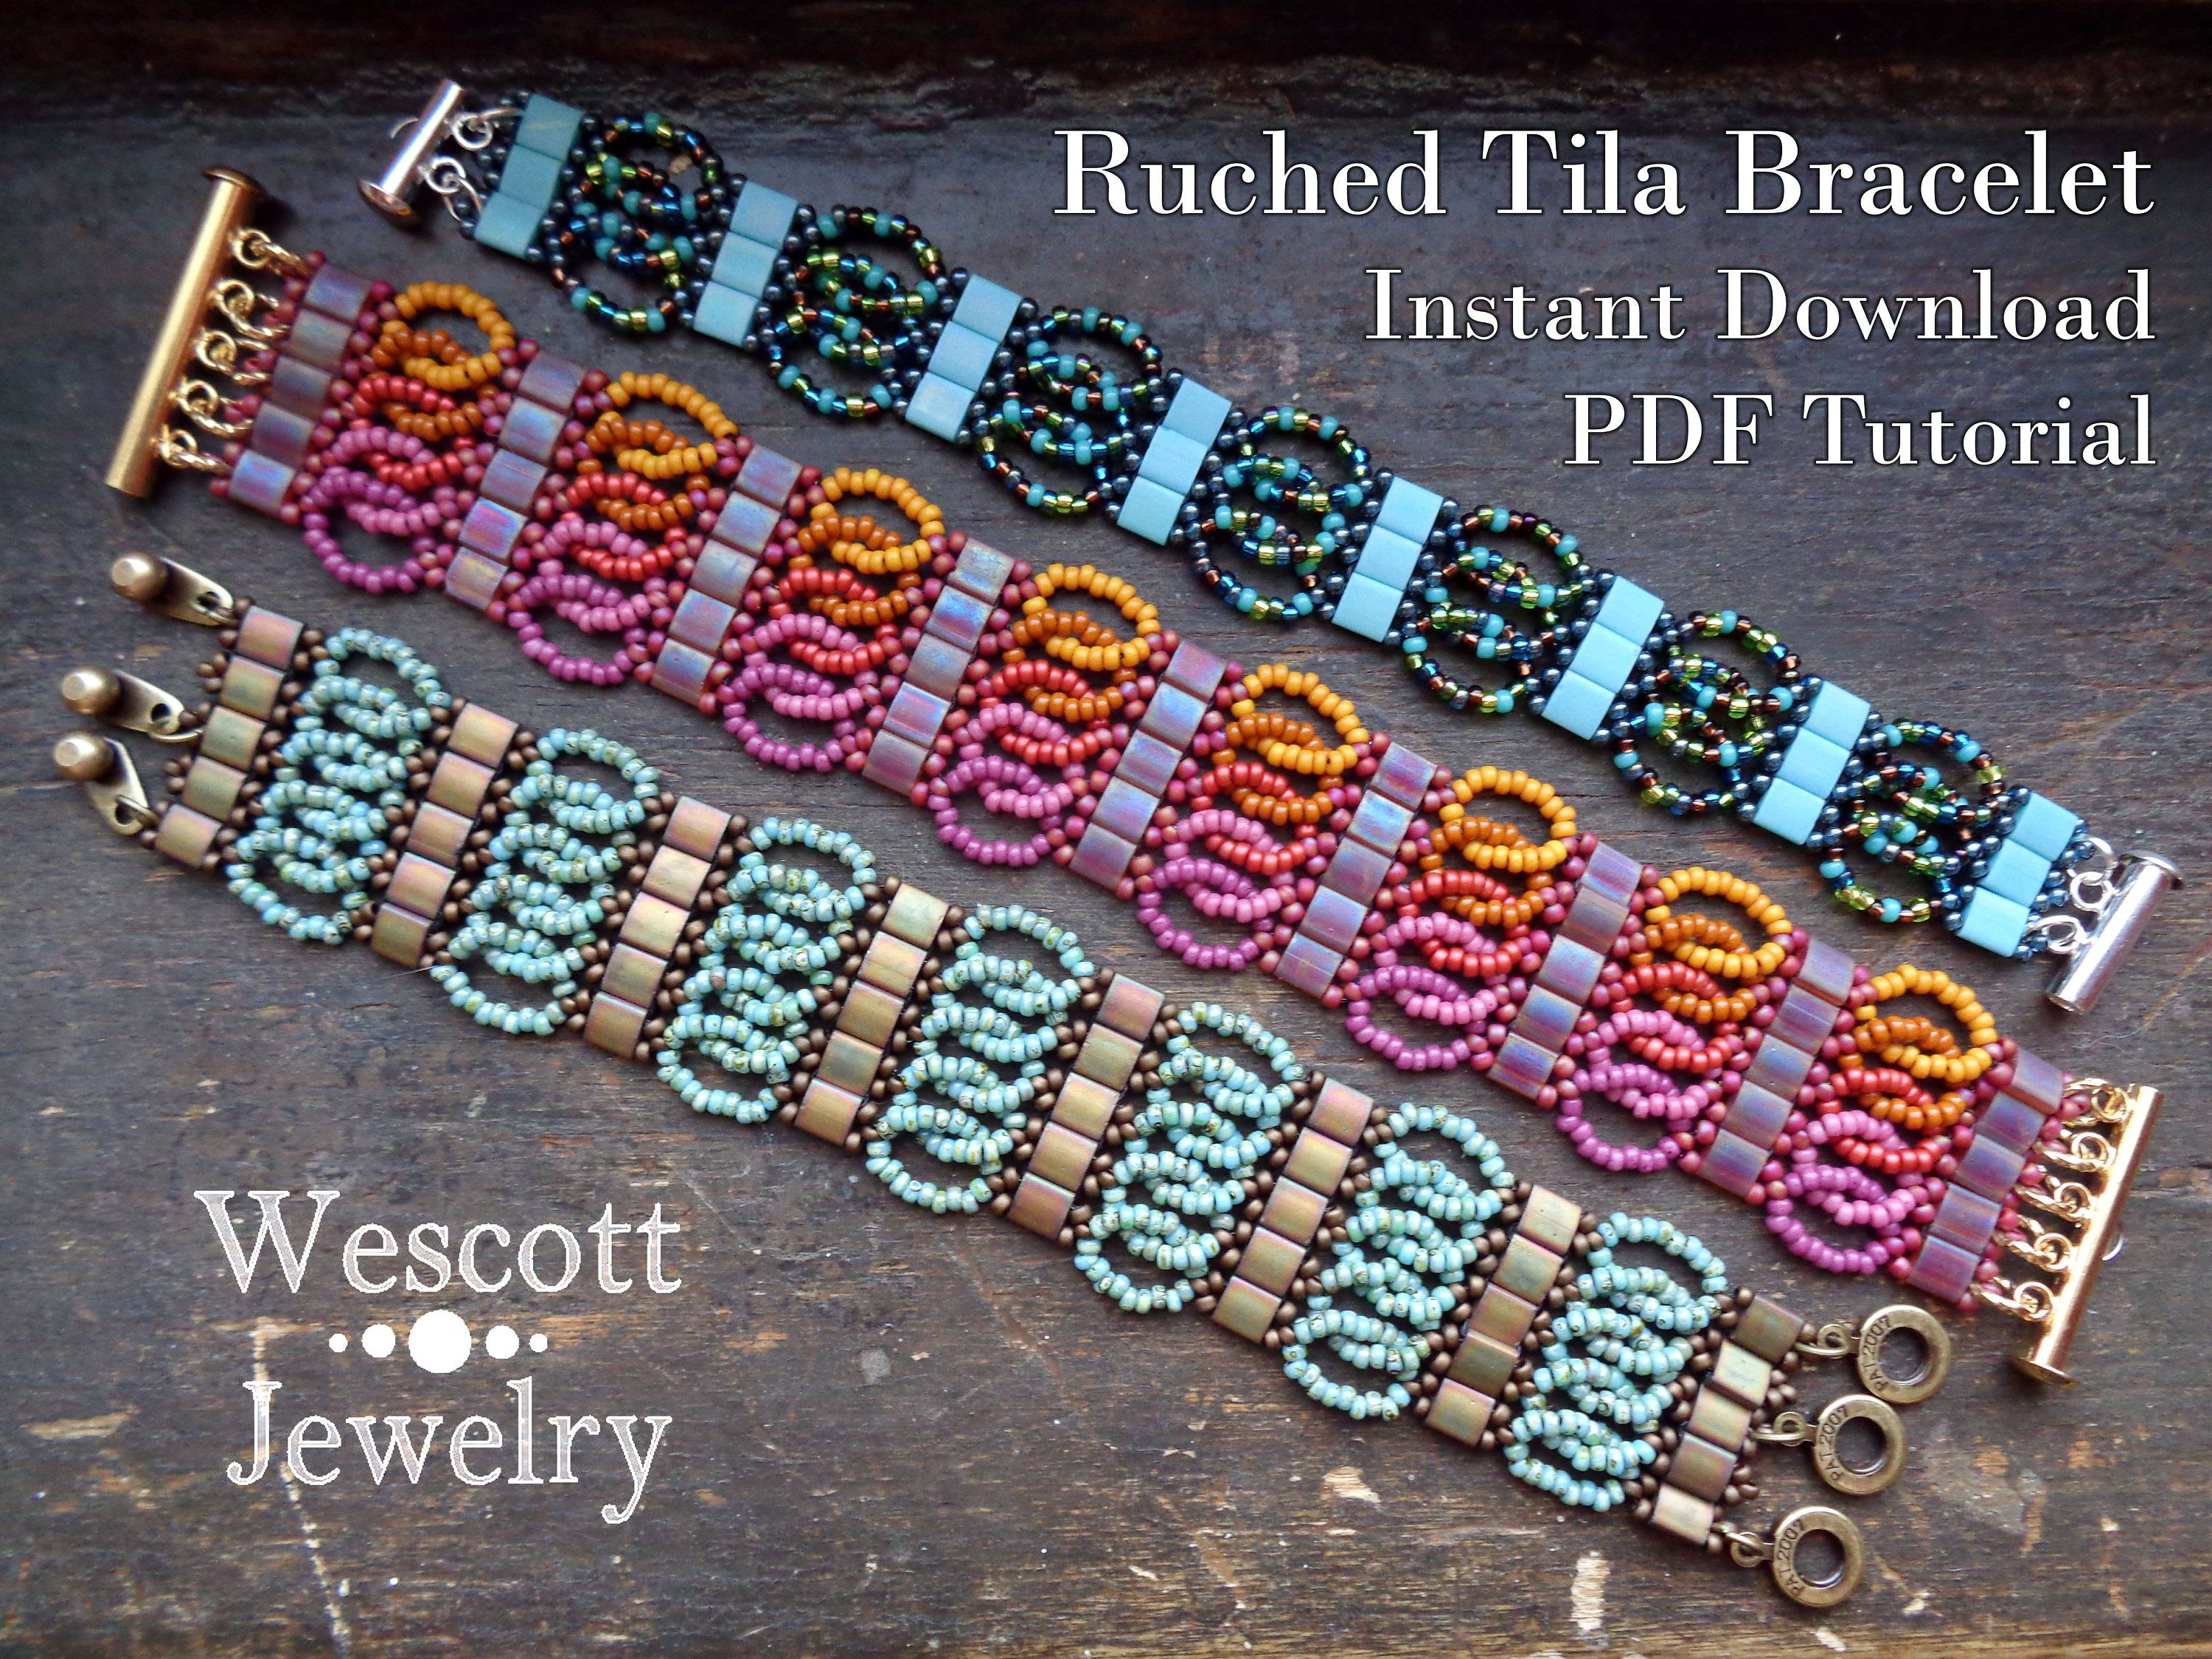 Beadweaving Pattern For Ruched Tila Bracelet Cuff With Two